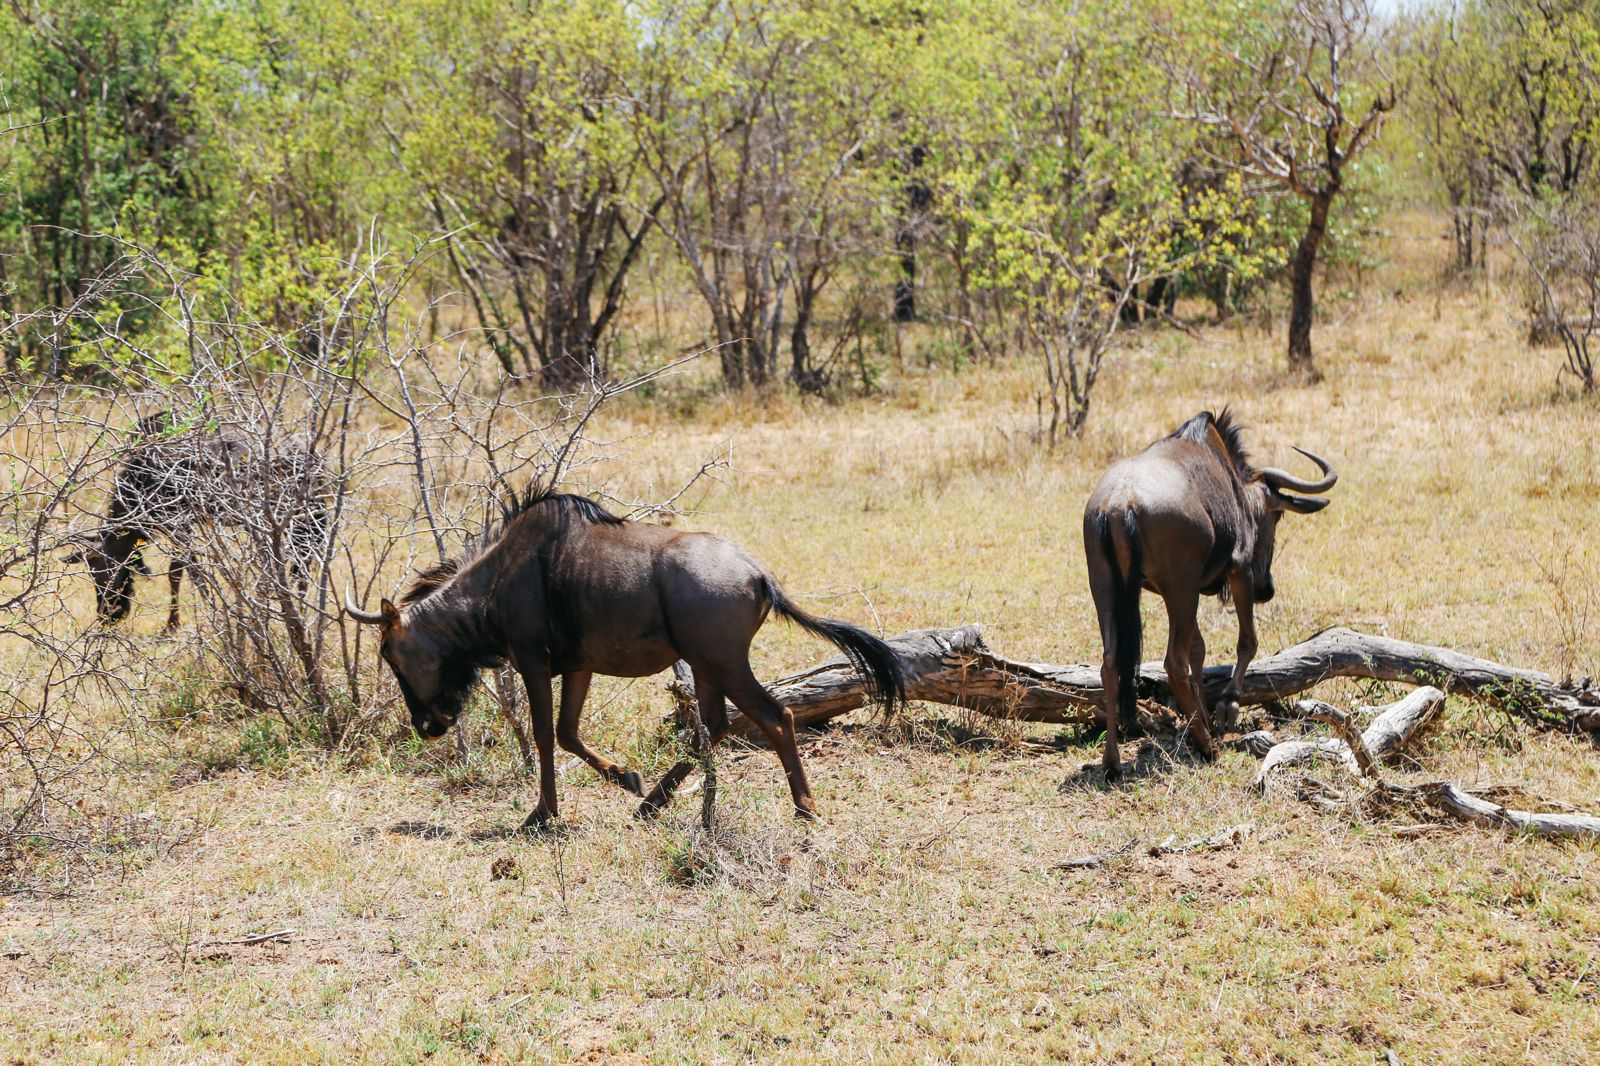 Arriving On Safari In South Africa... (Definitely Not Your Average Airport Transfer!) (15)